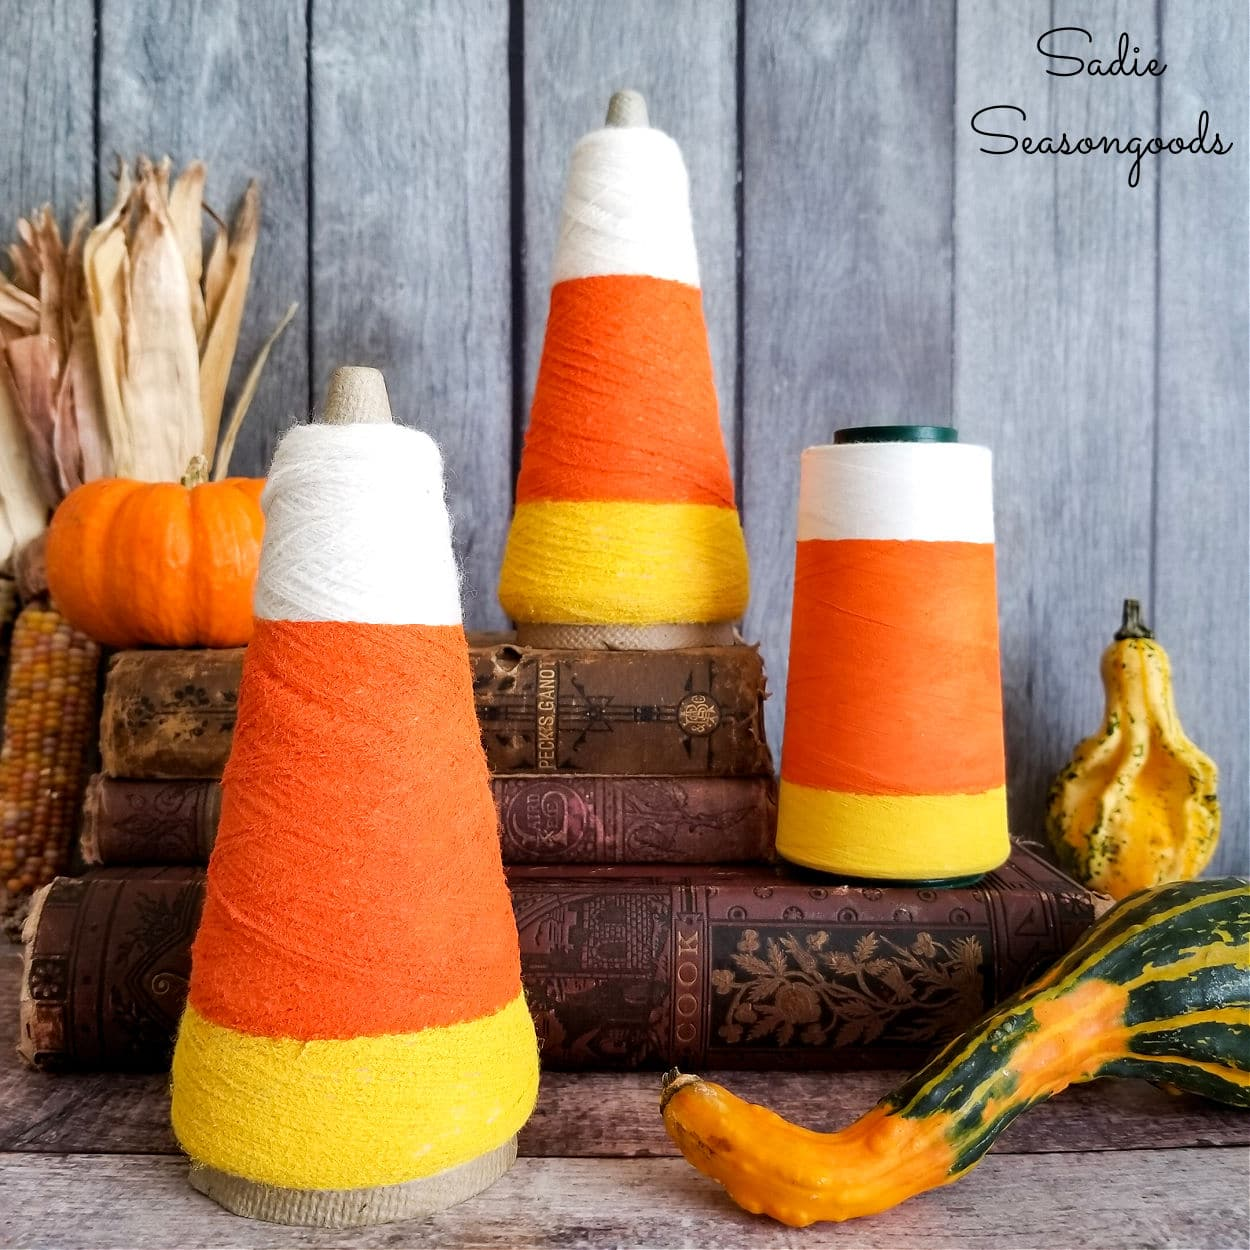 Candy Corn Decorations from Thread Cones